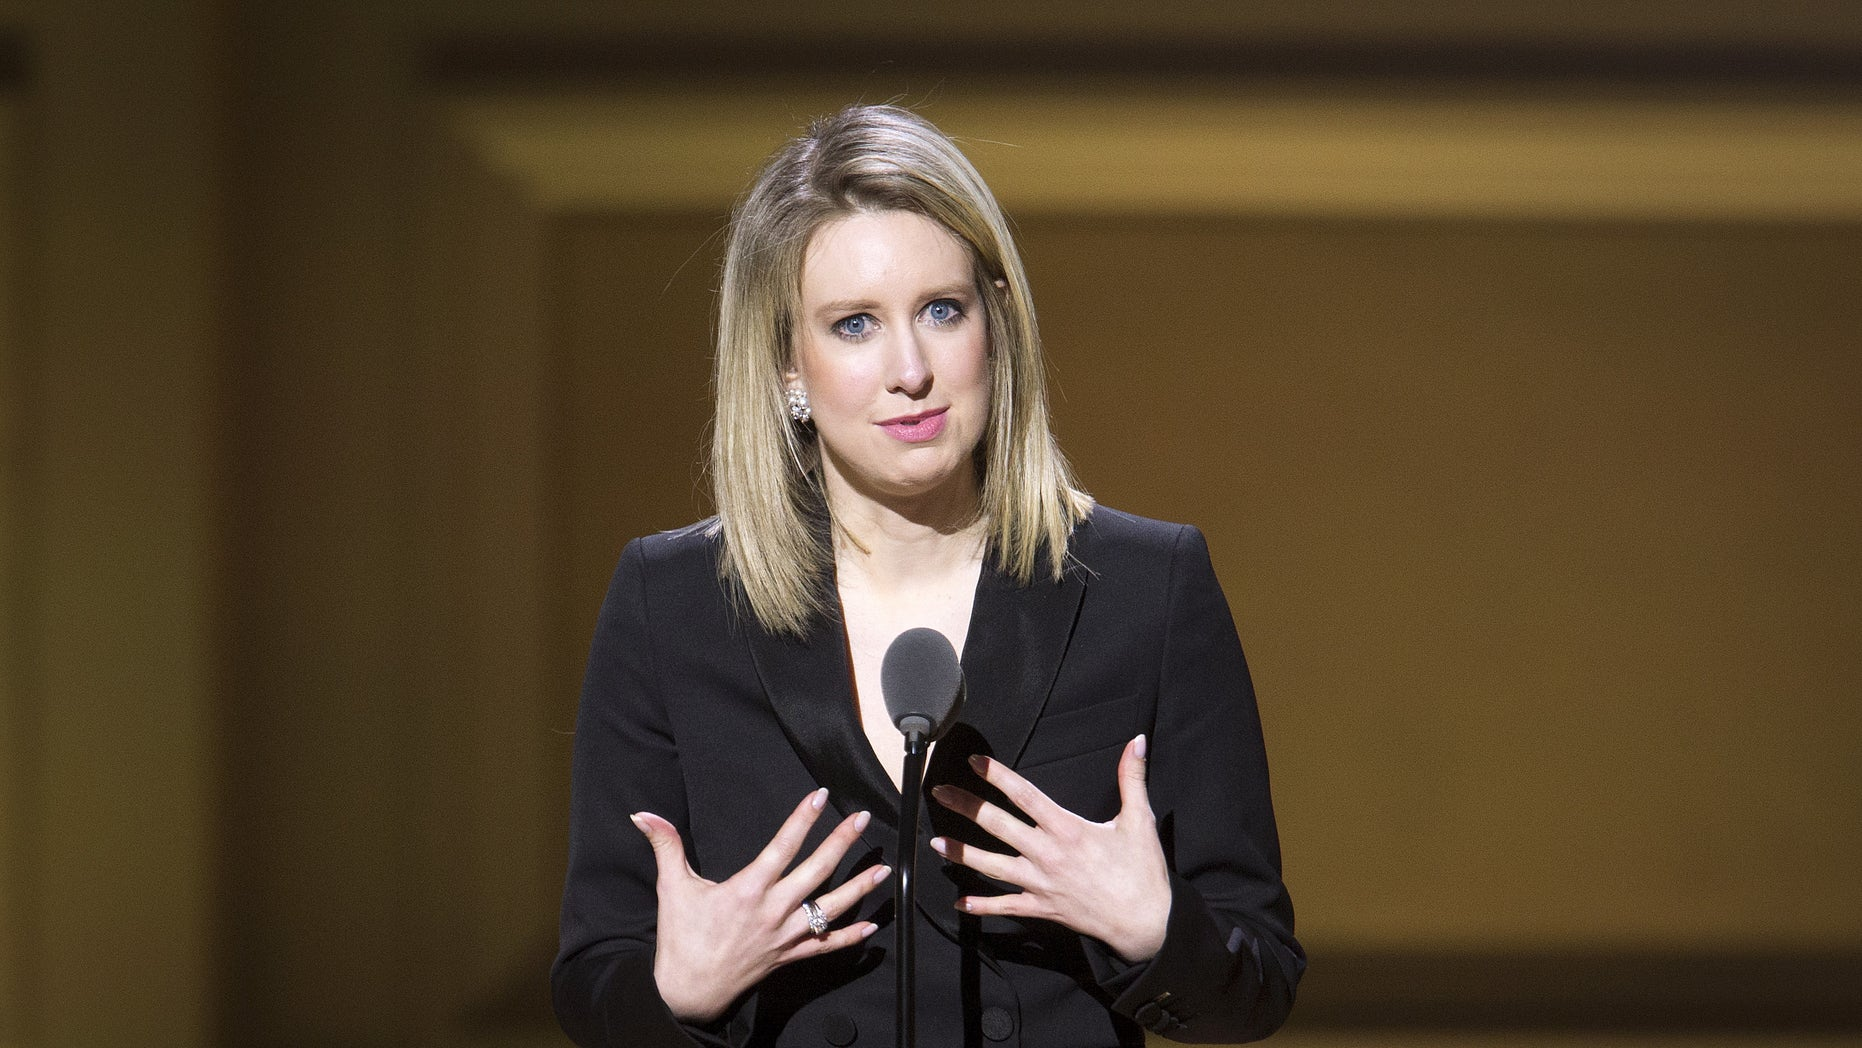 Theranos Chief Executive Officer Elizabeth Holmes speaks on stage at the Glamour Women of the Year Awards where she receives an award, in the Manhattan borough of New York November 9, 2015.